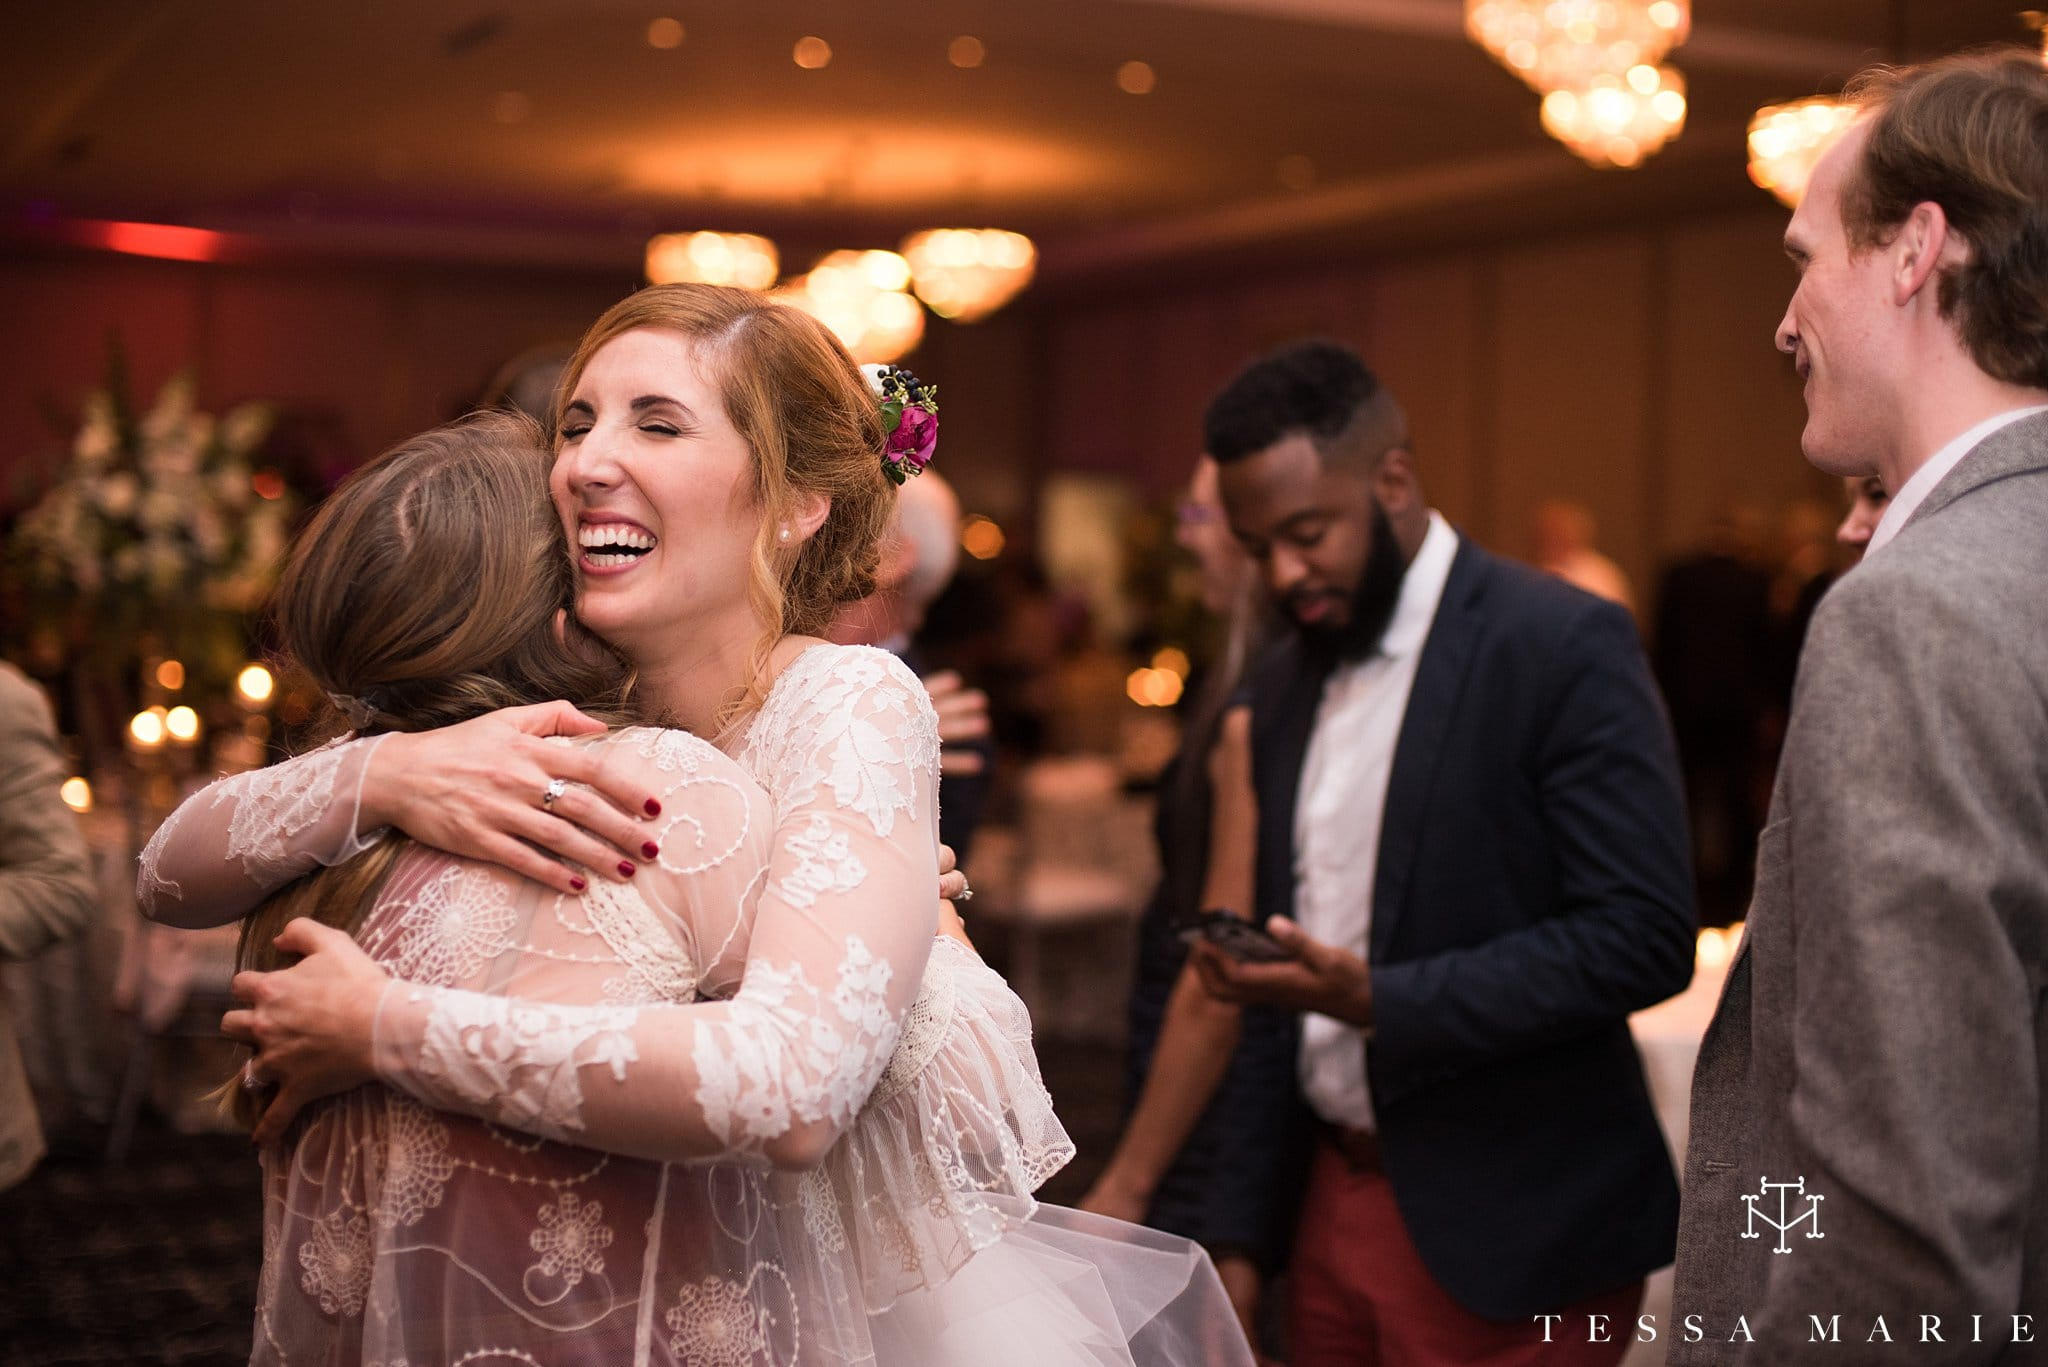 tessa_marie_weddings_estate_wedding_flourish_wedding_legendary_events_wedding_angels_bride_groom_wedding_Day_rainy_wedding_day_fall_october_wedding_atlantas_best_wedding_professionals_0865.jpg